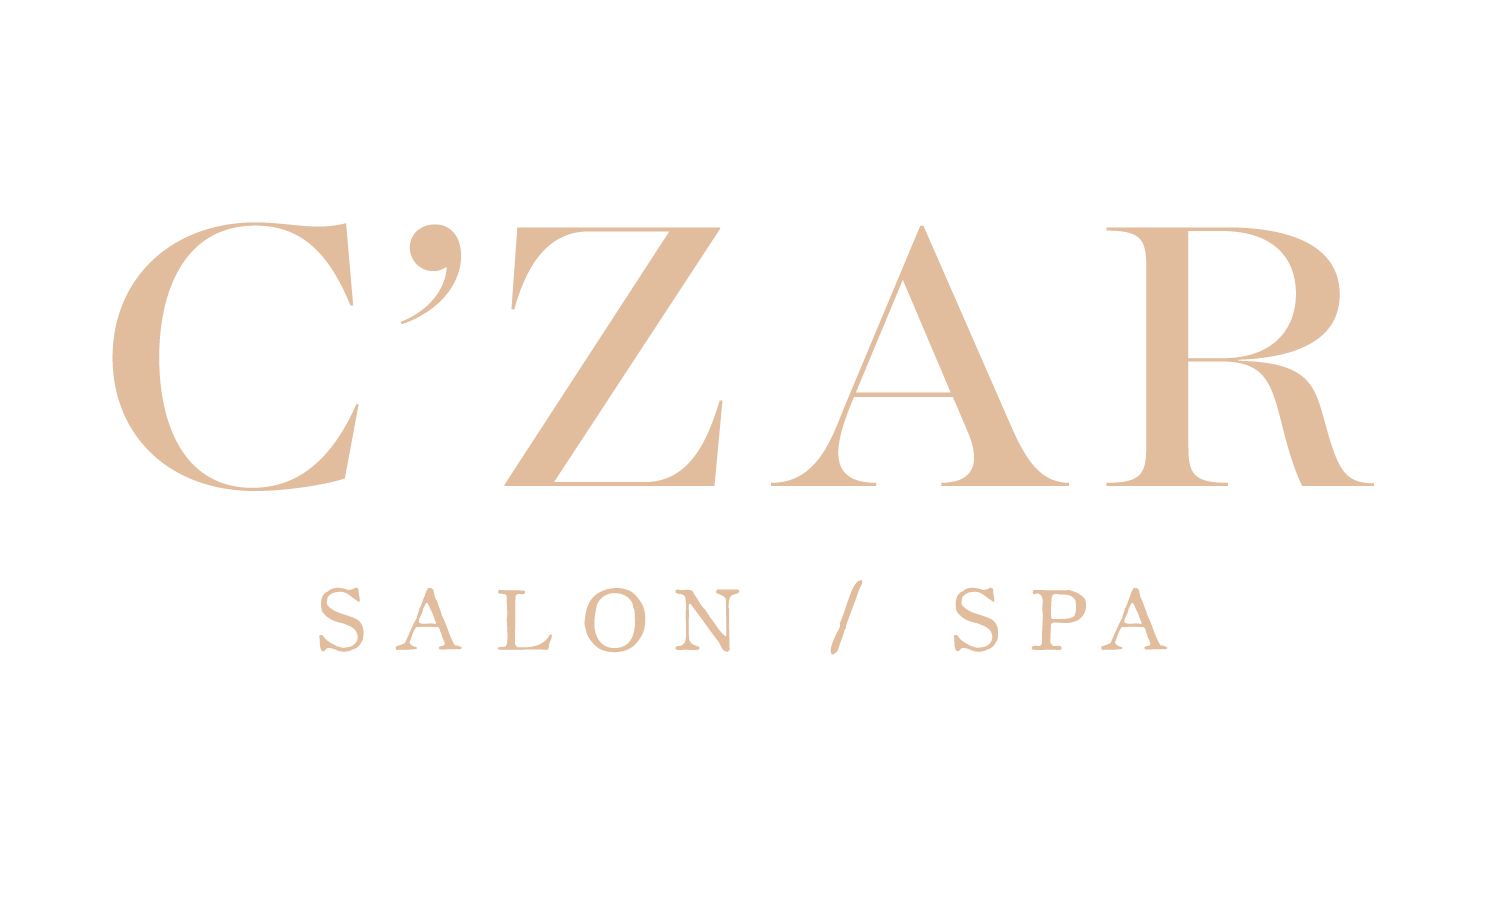 C'zar Salon Spa Wheaton